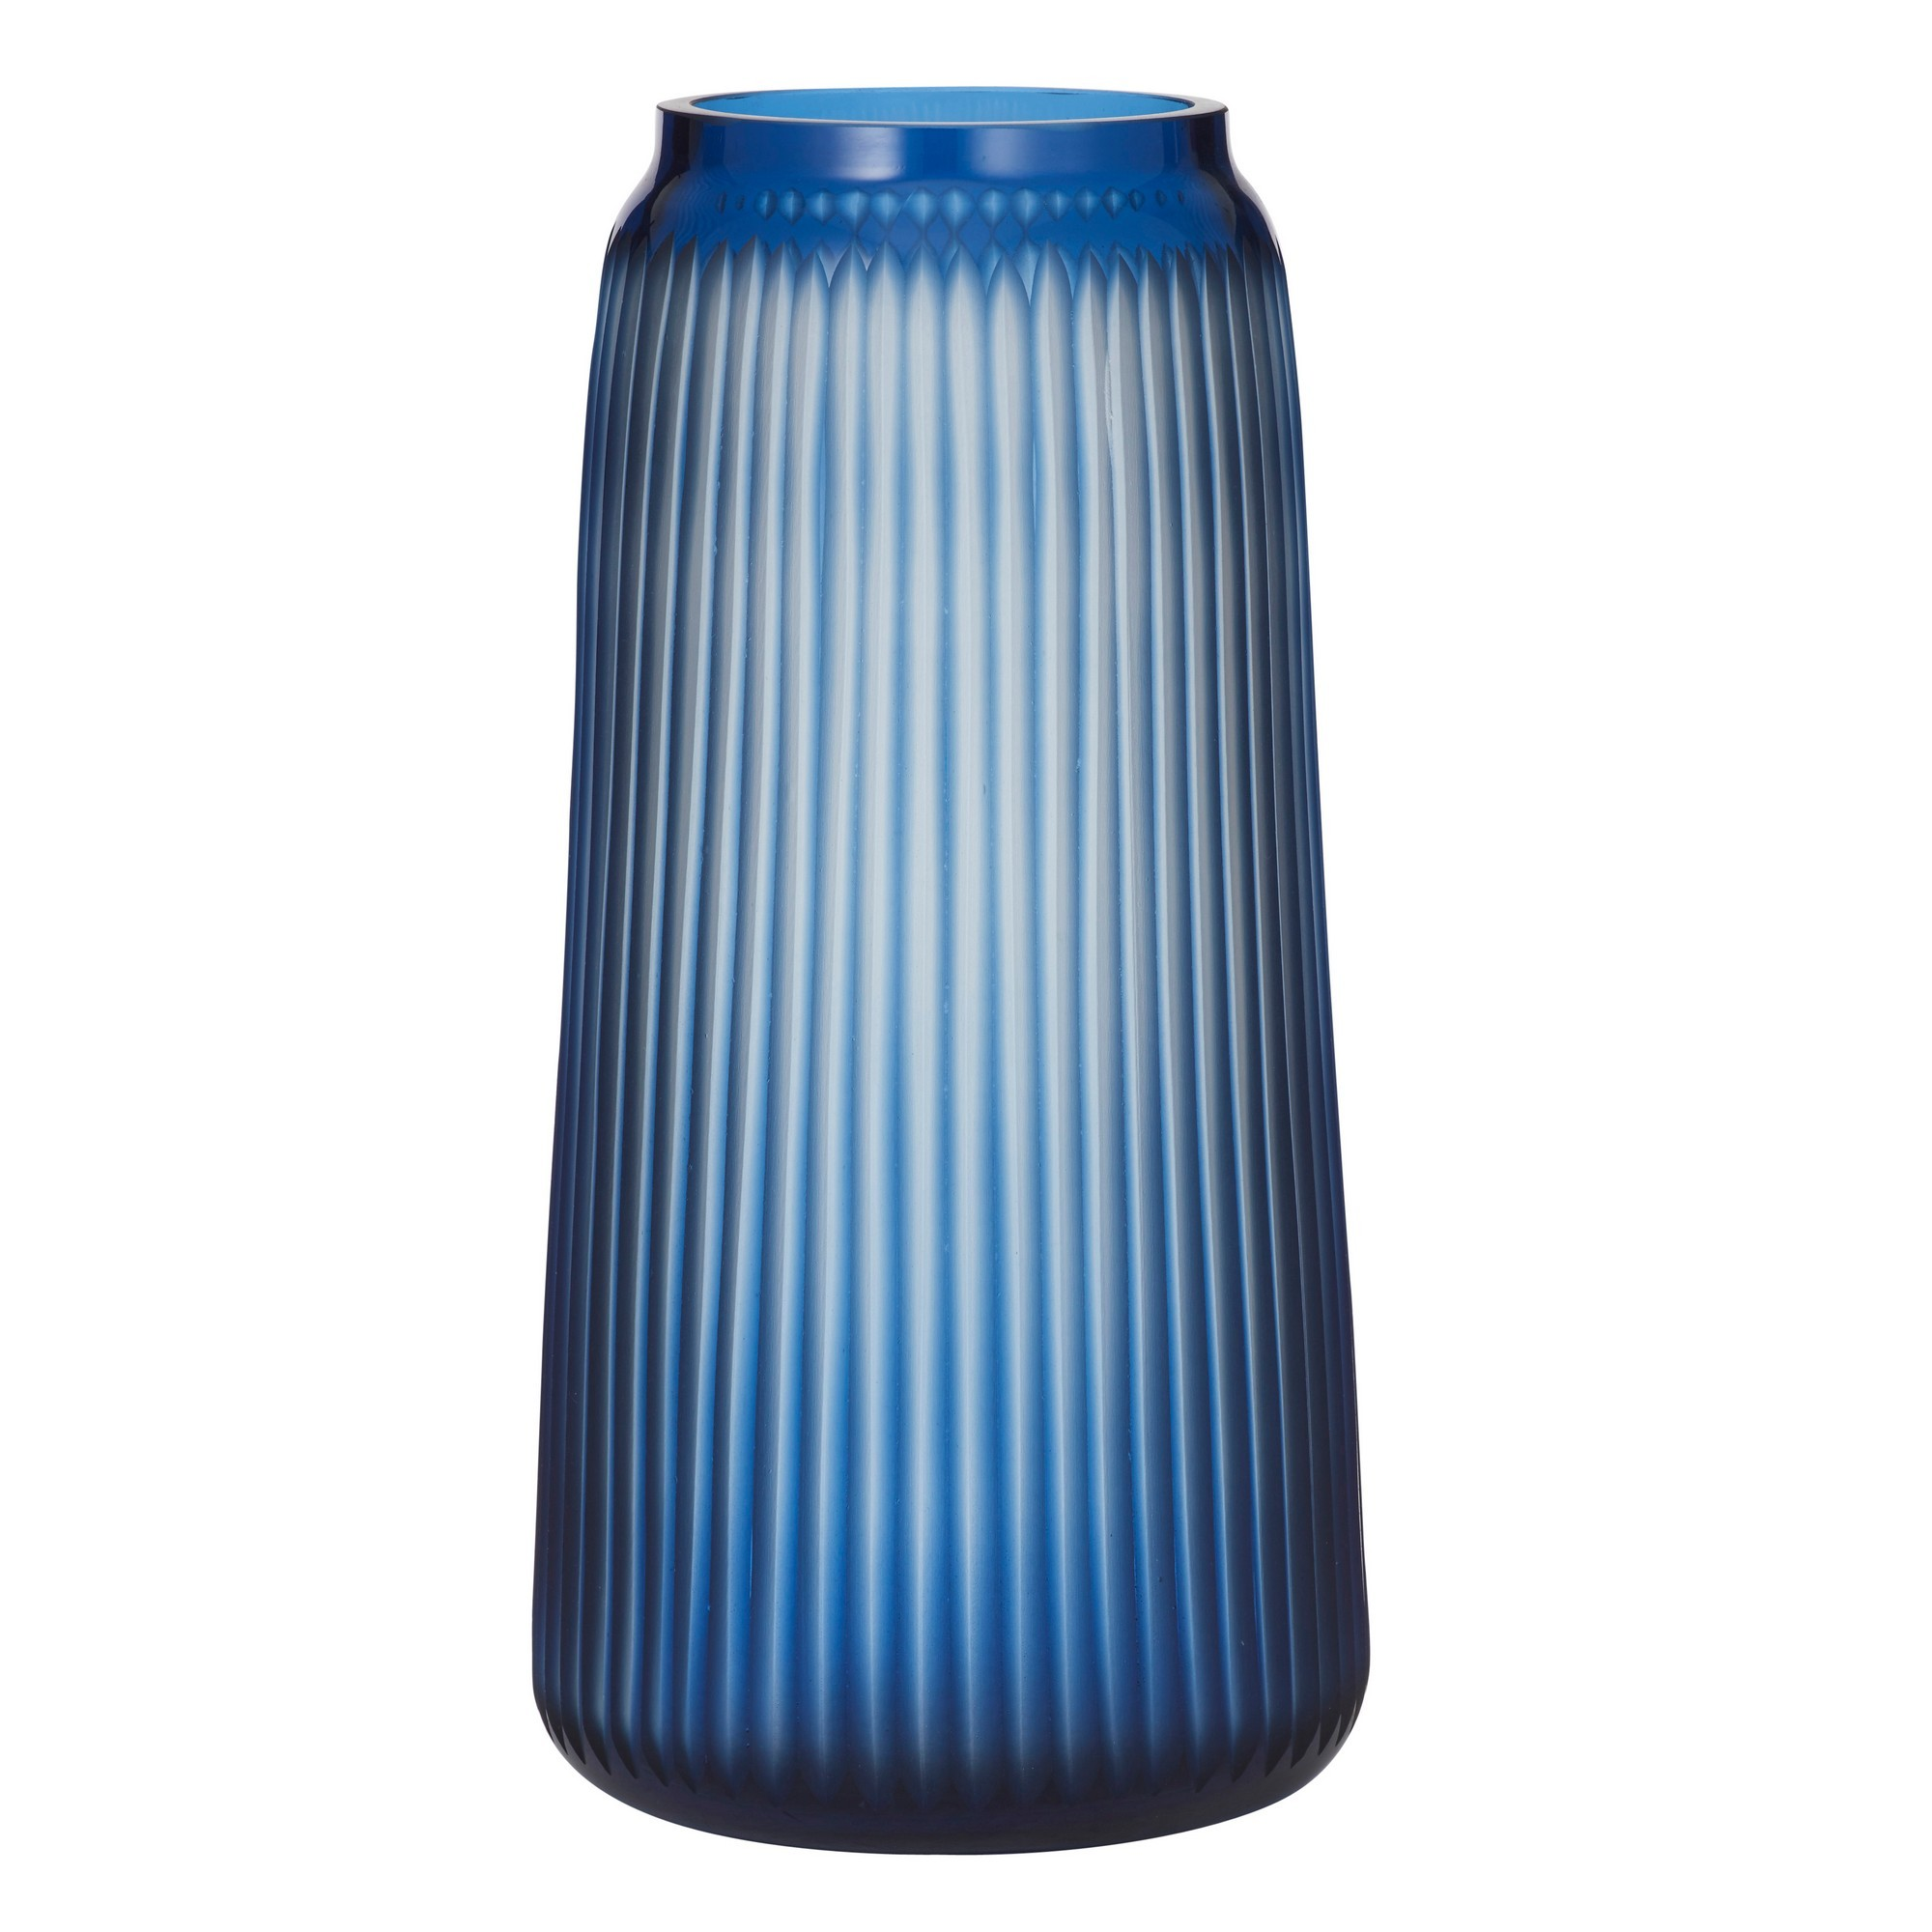 Cora Ribbed Glass Vase, Large